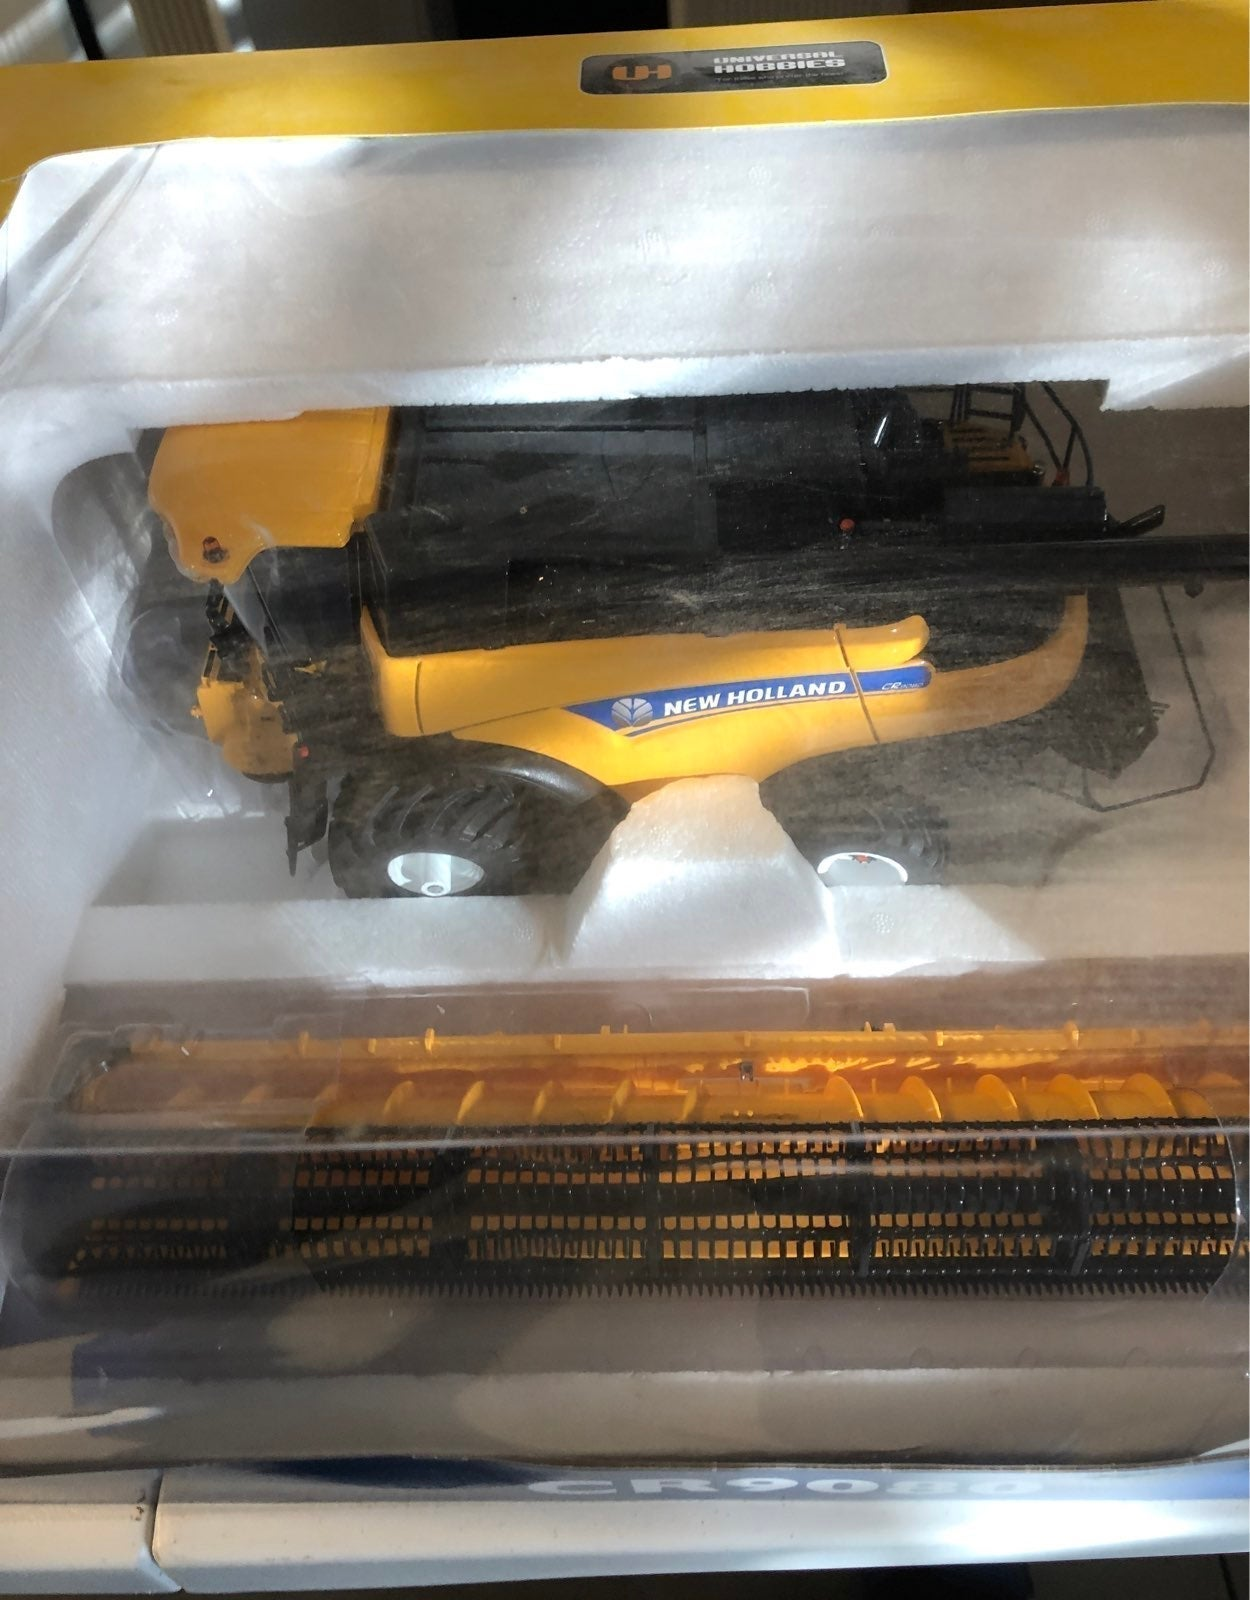 New holland cr9080 1:32 scale